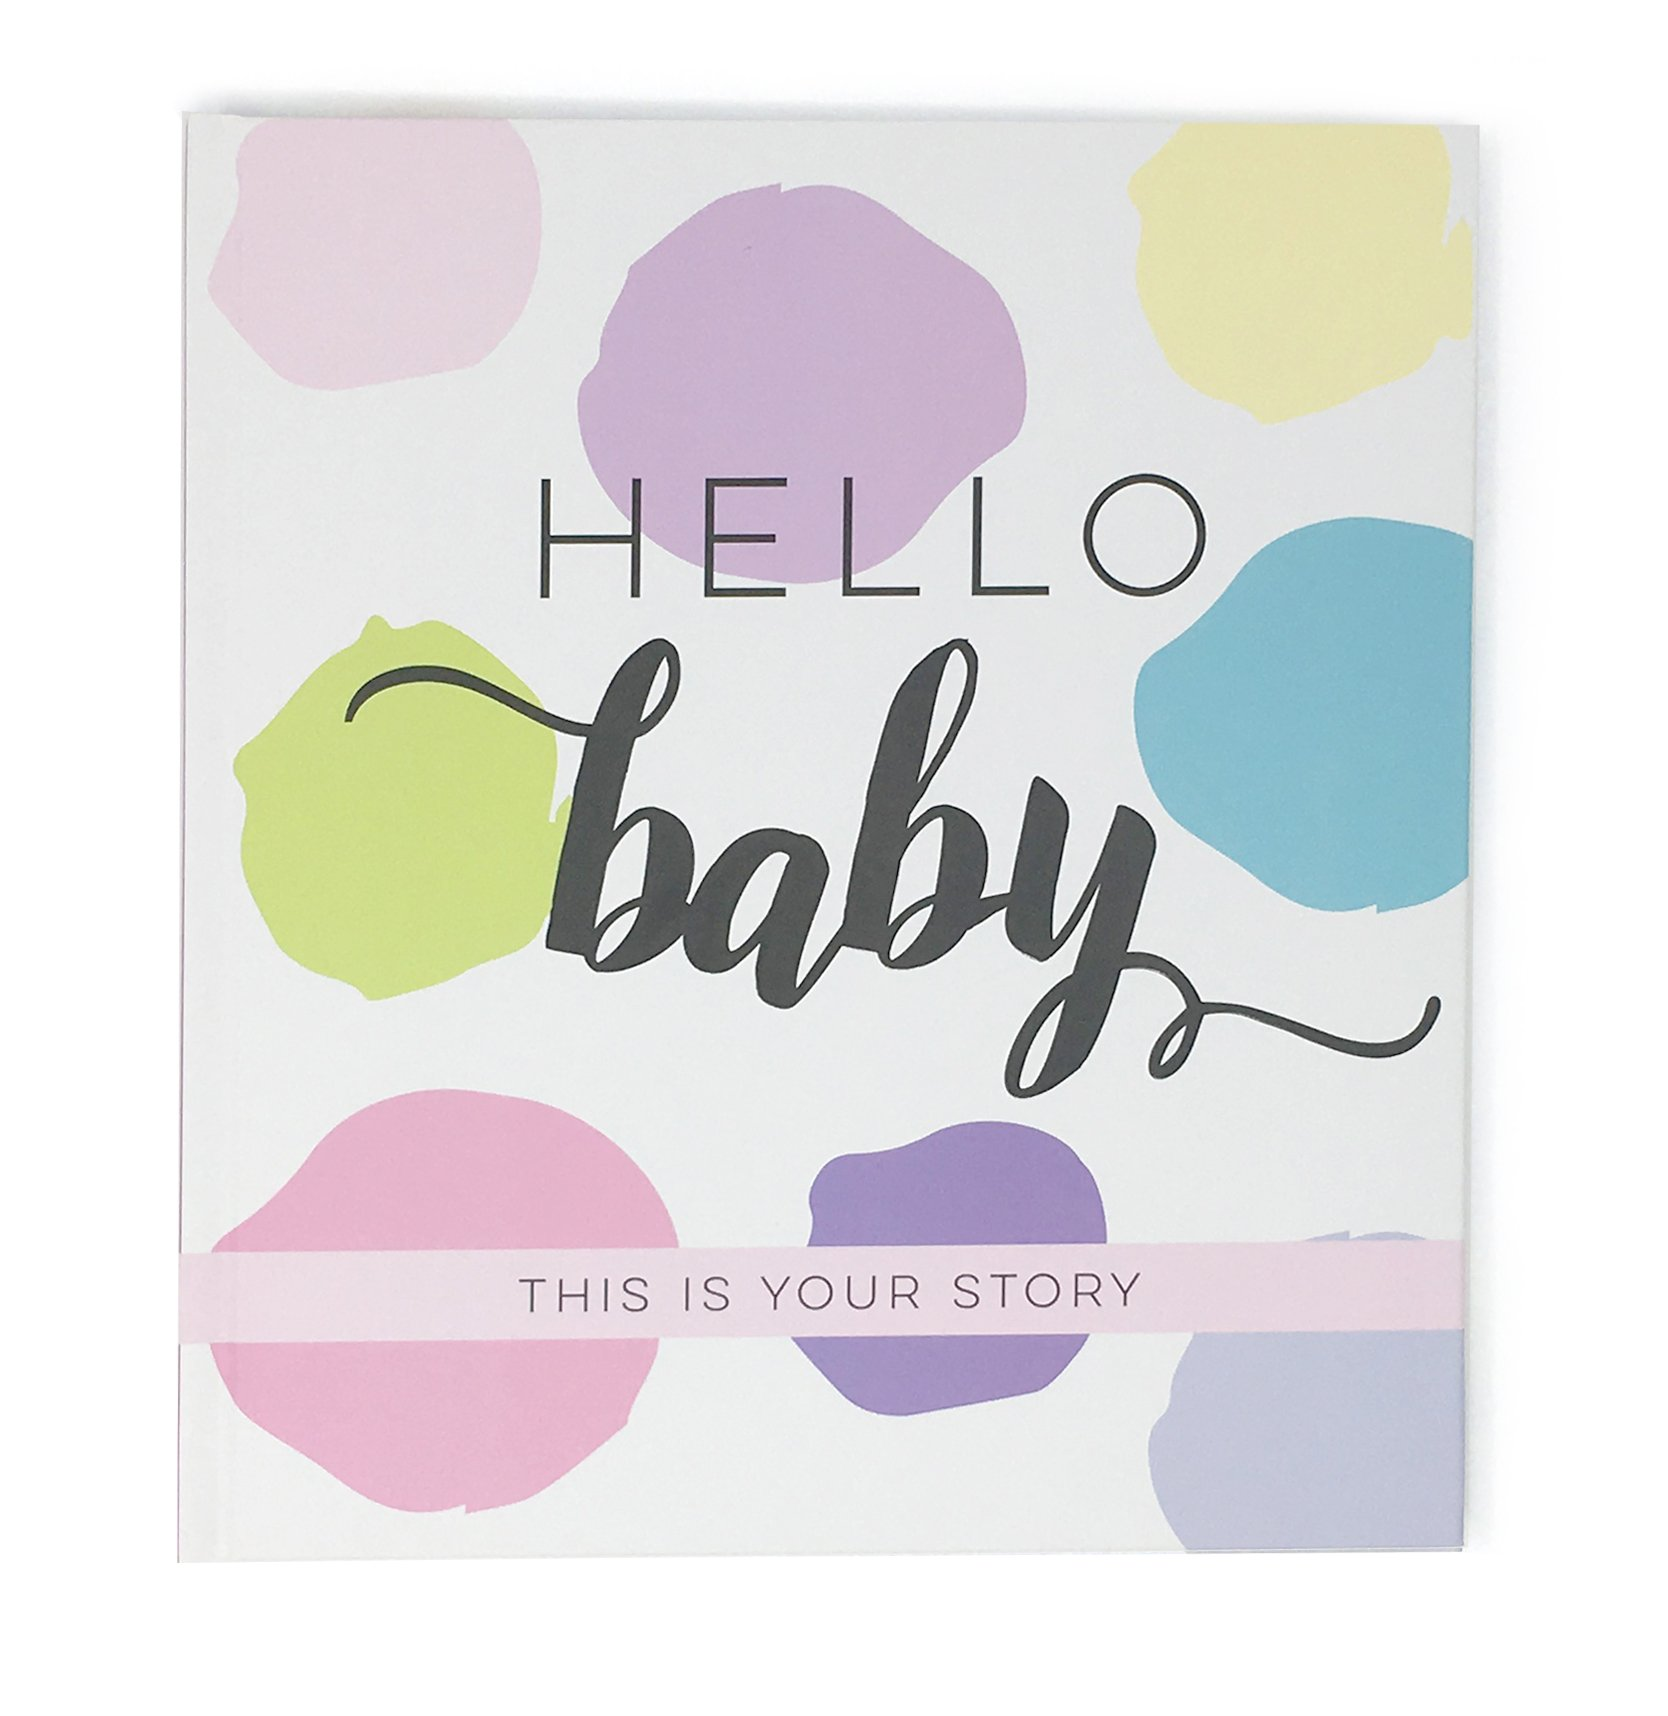 Bobee Baby Journal Memory Book Girl Baby's Journey First 5 Years Pregnancy and Birth Story, Footprints, Months 1-12, Birthdays 1-5, First Day of School, Special Memories